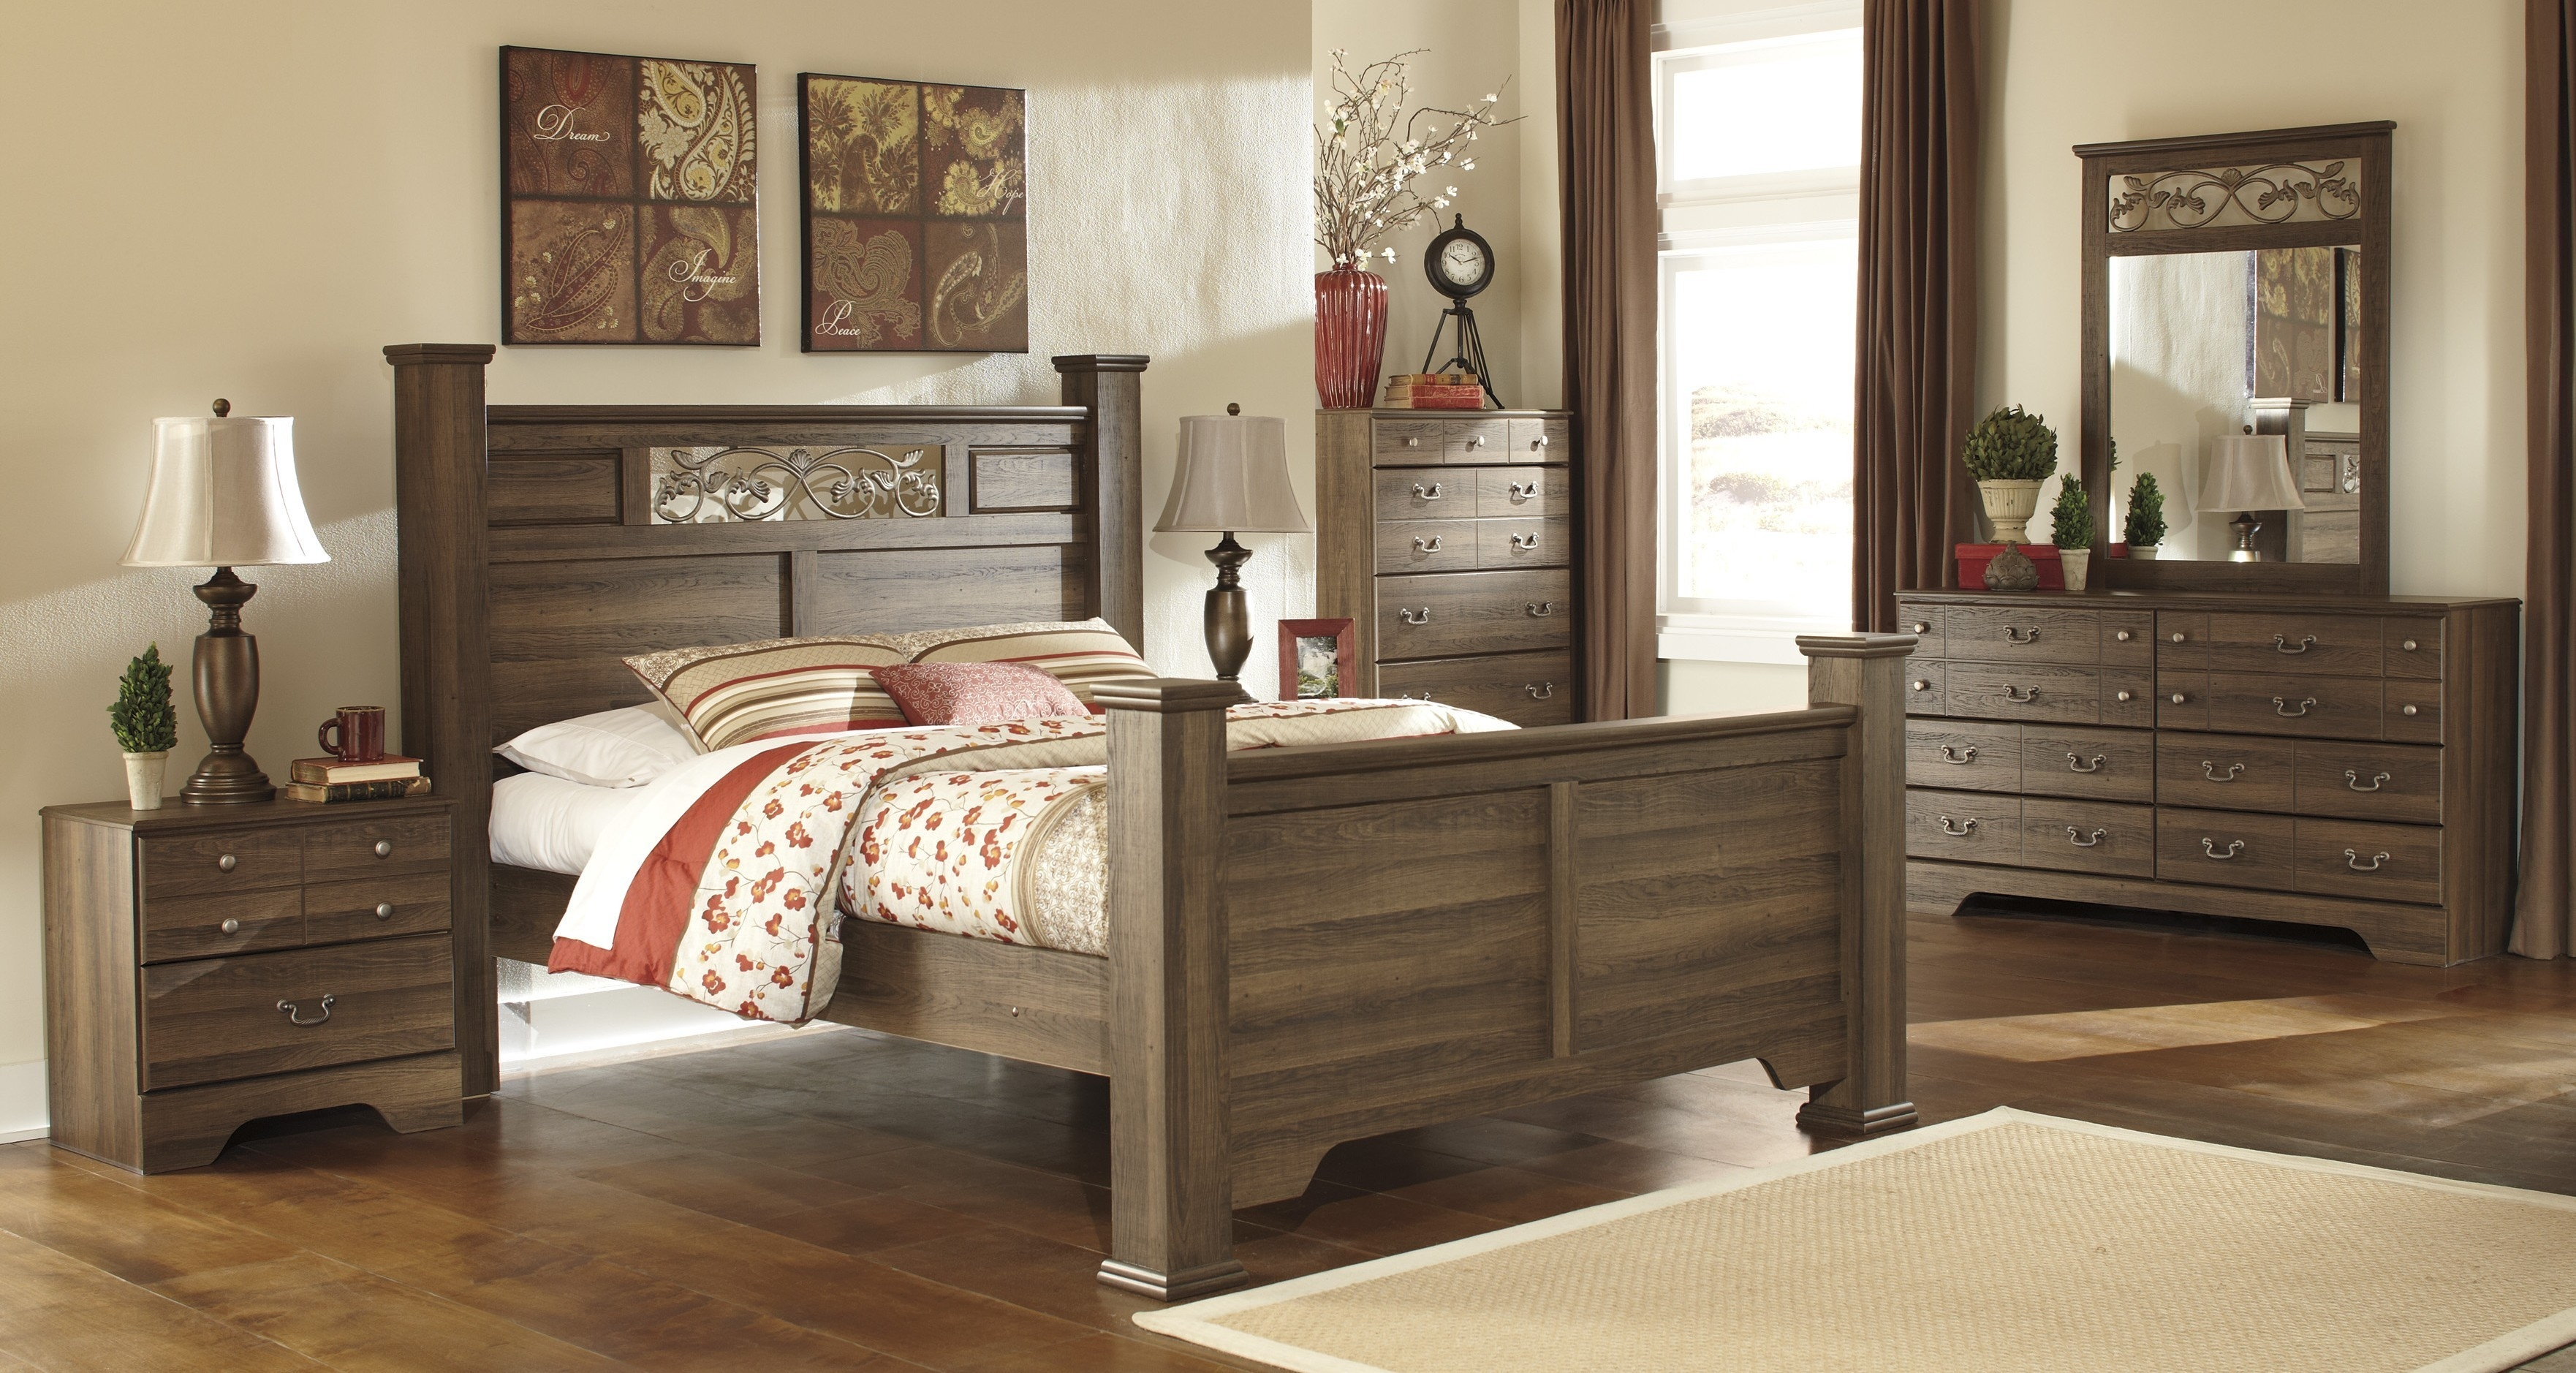 Picture of: Ashley Furniture Bedroom Sets King Hawk Haven Layjao